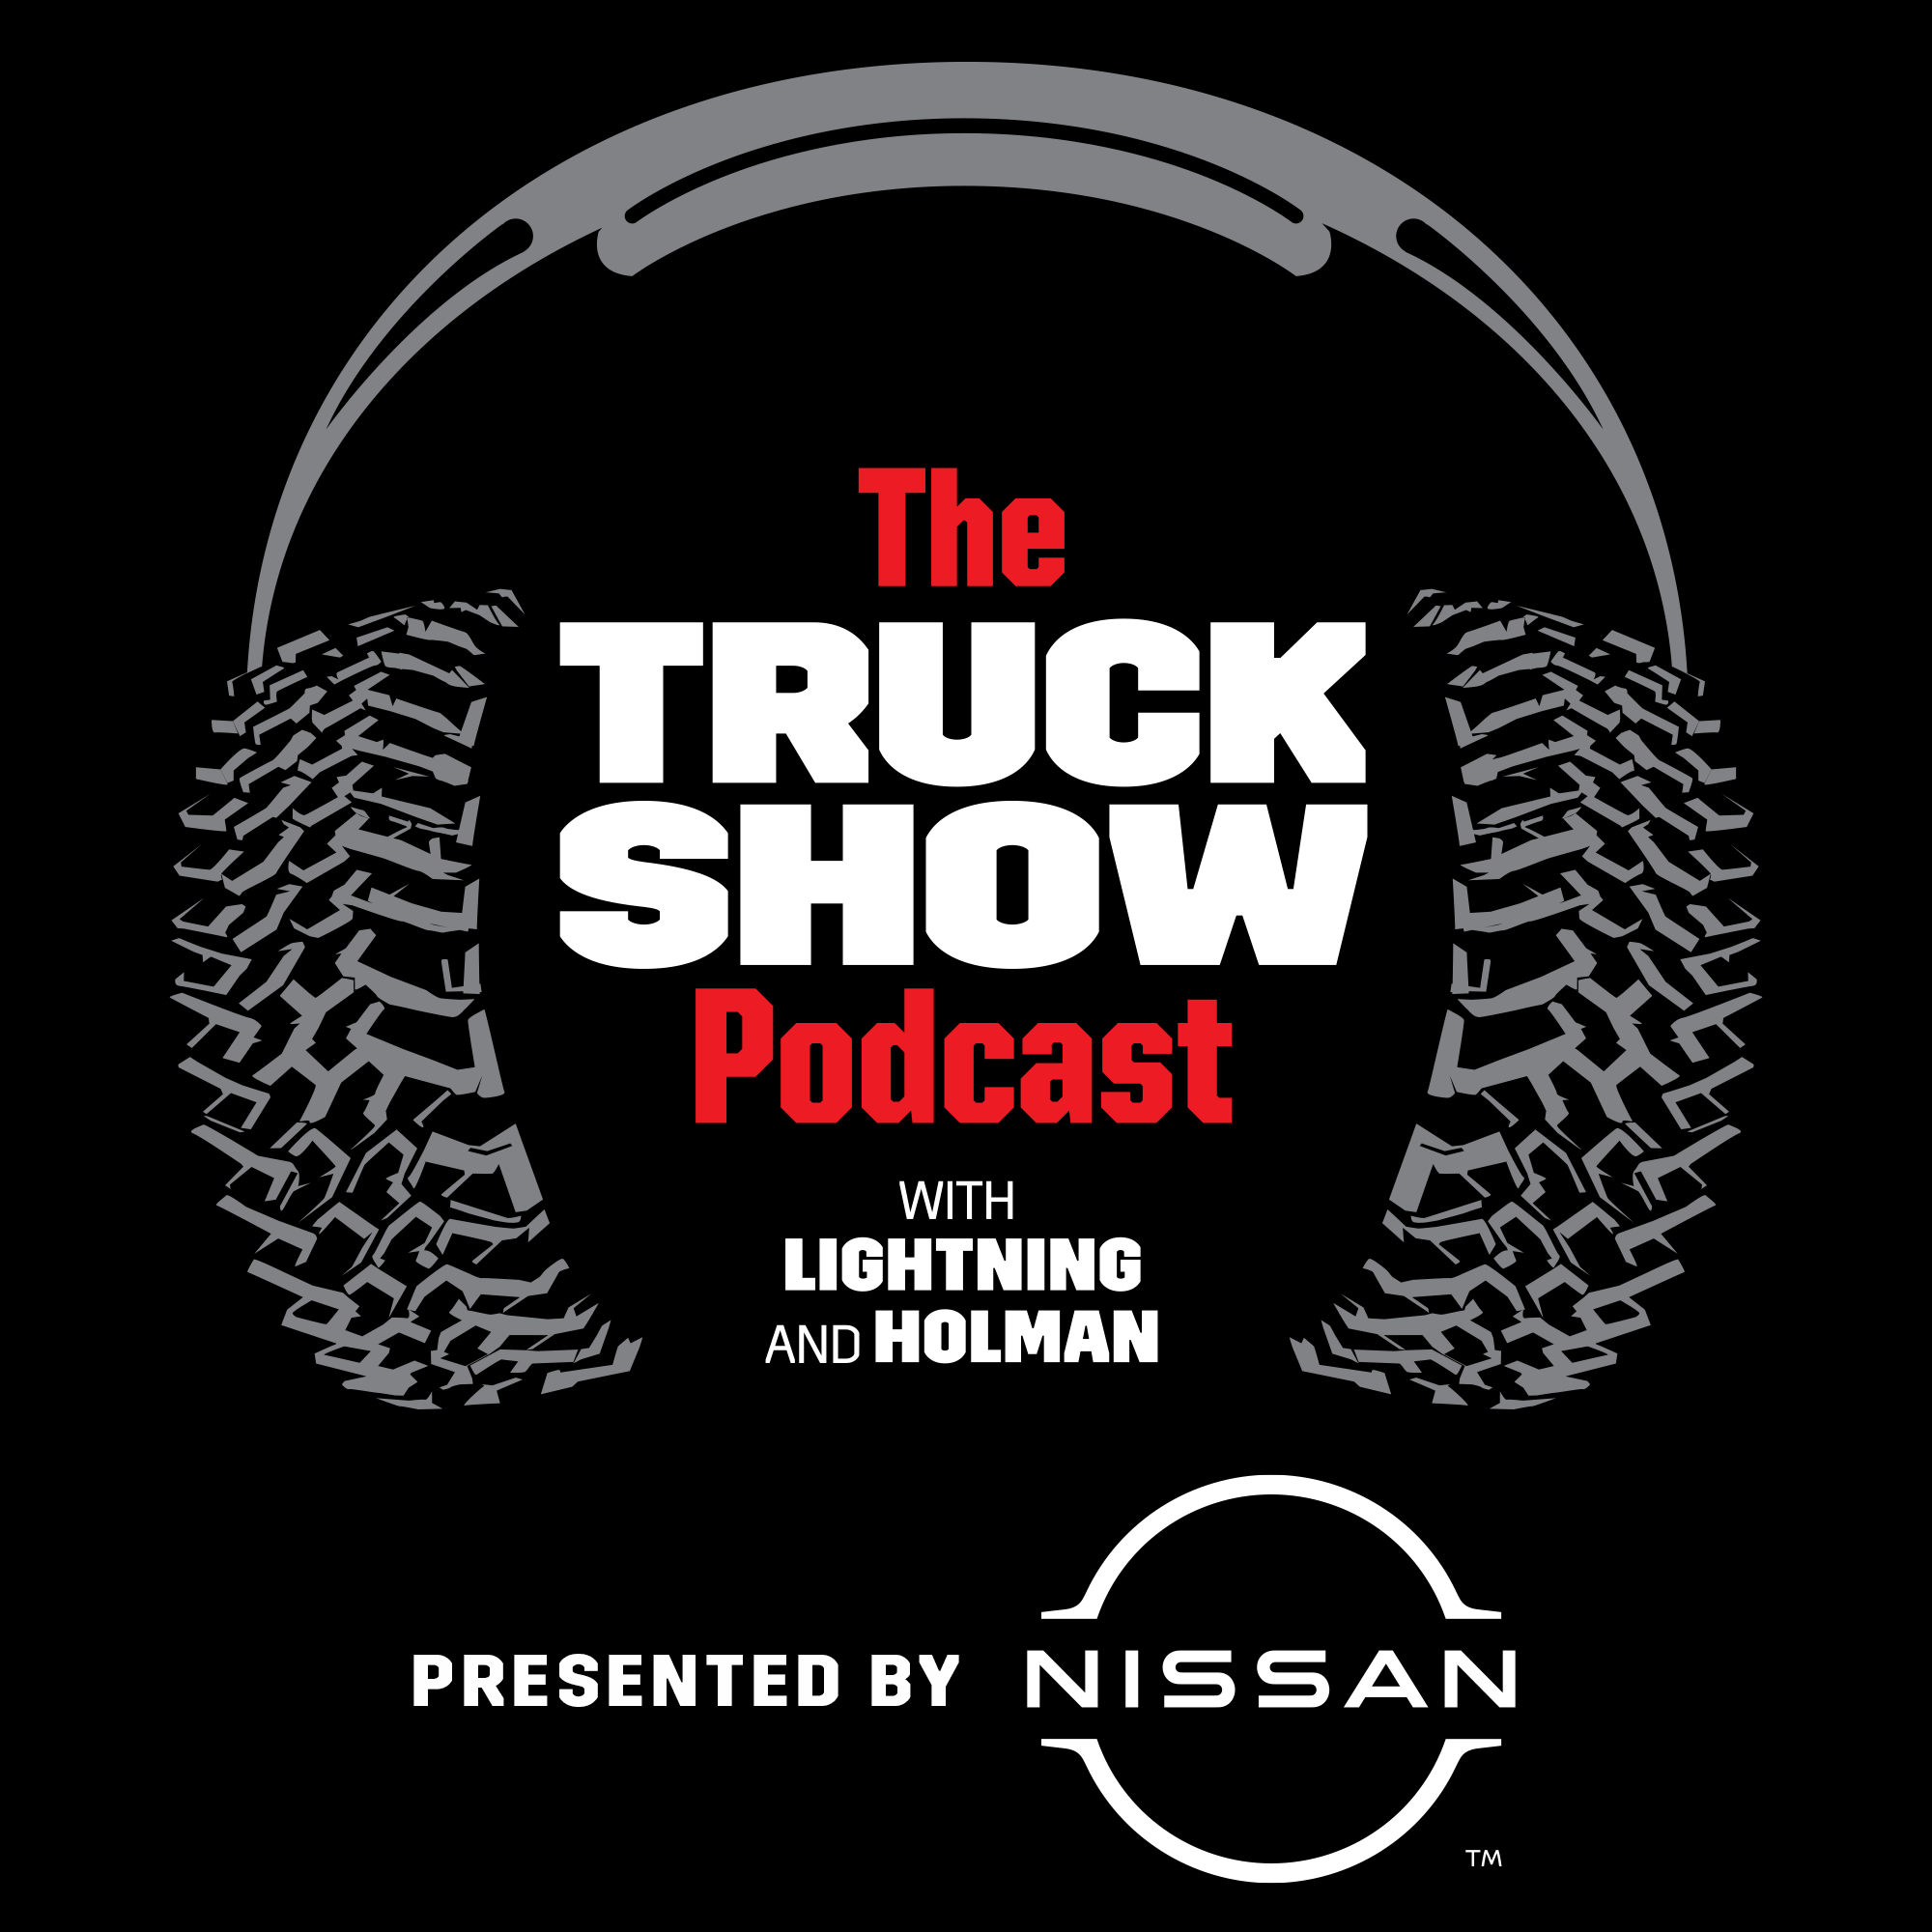 The Truck Show Podcast show art